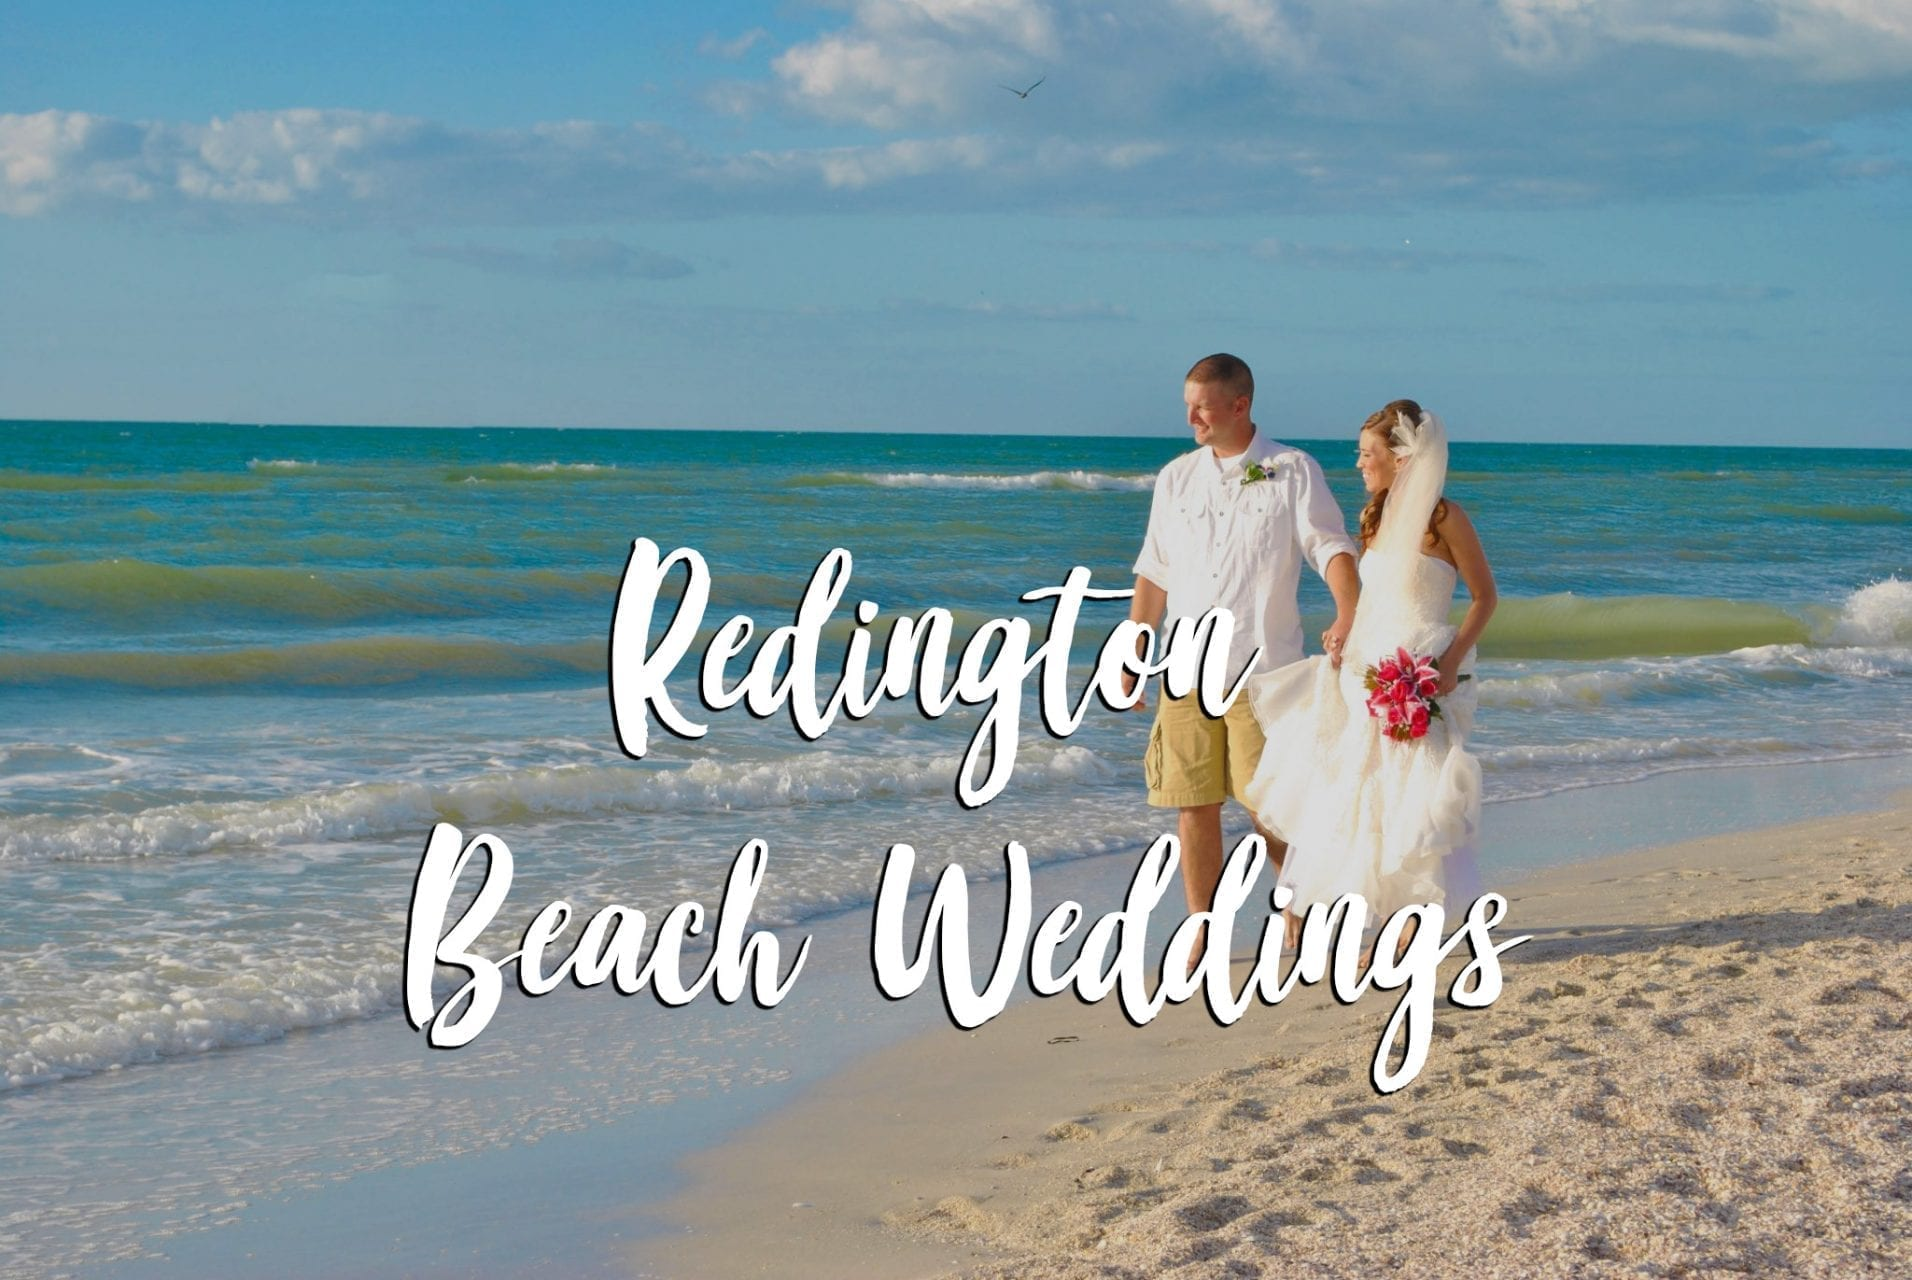 Redington Beach Wedding